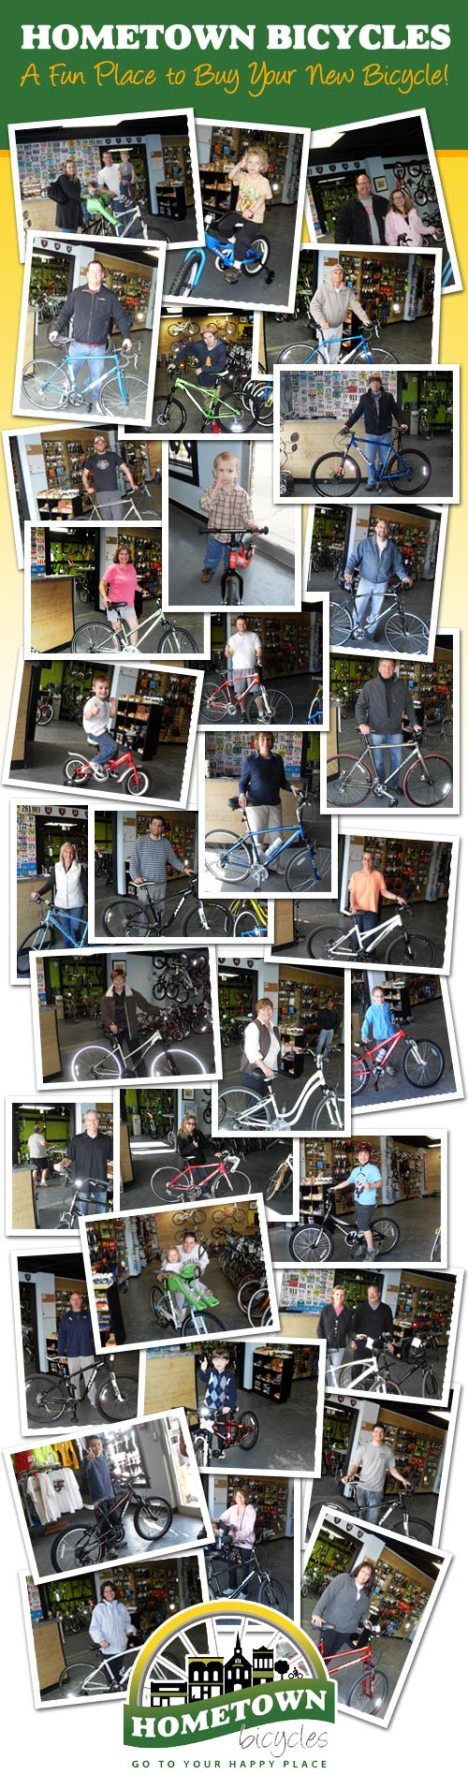 Hometown Bicycles: A fun place to buy a bicycle!